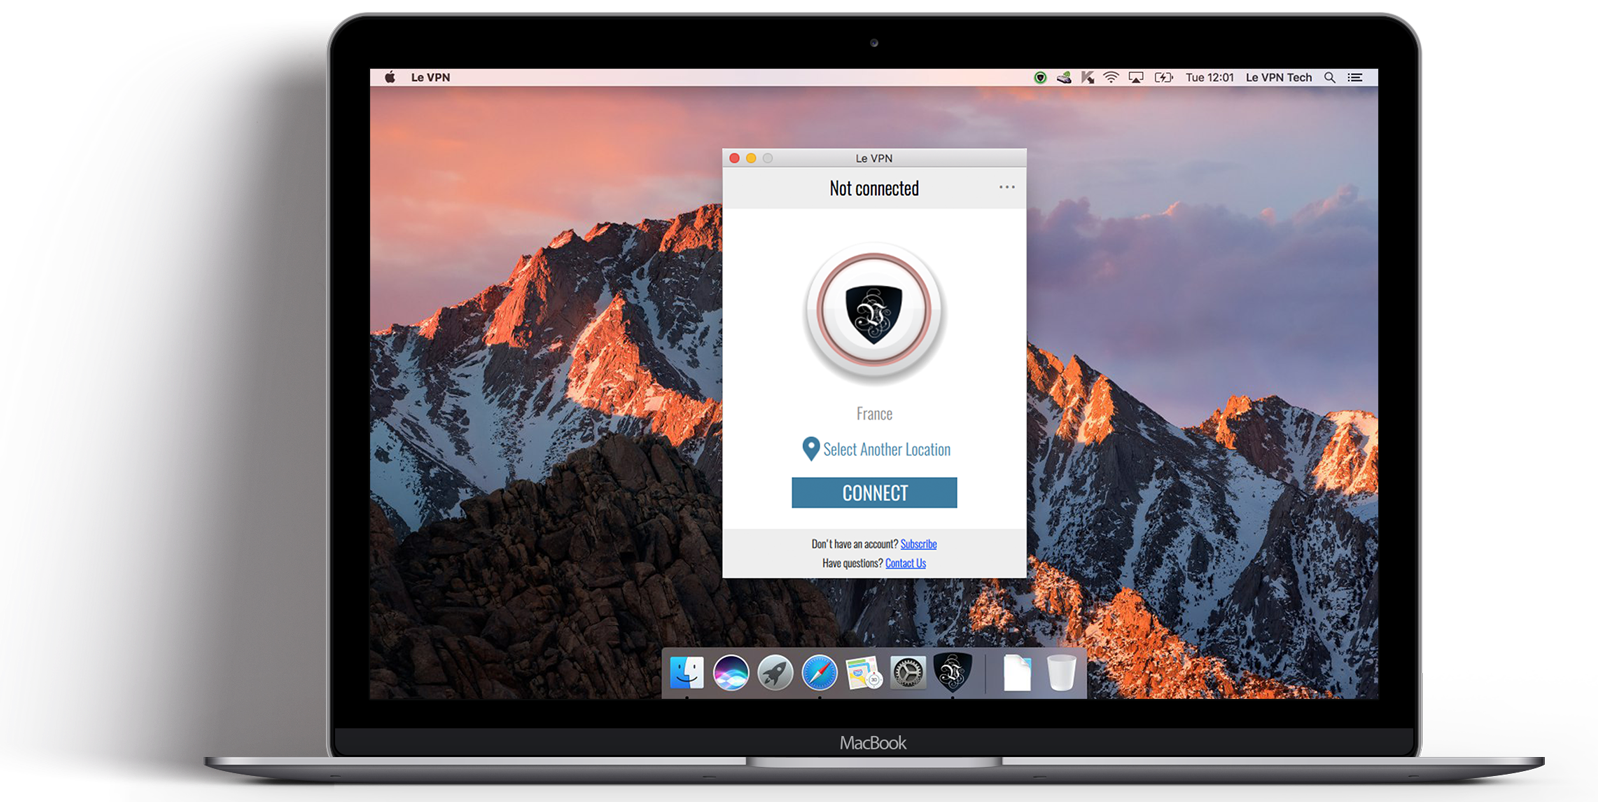 Best VPN for Mac | Le VPN software for Mac | Best VPN Mac | Best Mac VPN | Le VPN Mac OS | Le VPN for Mac